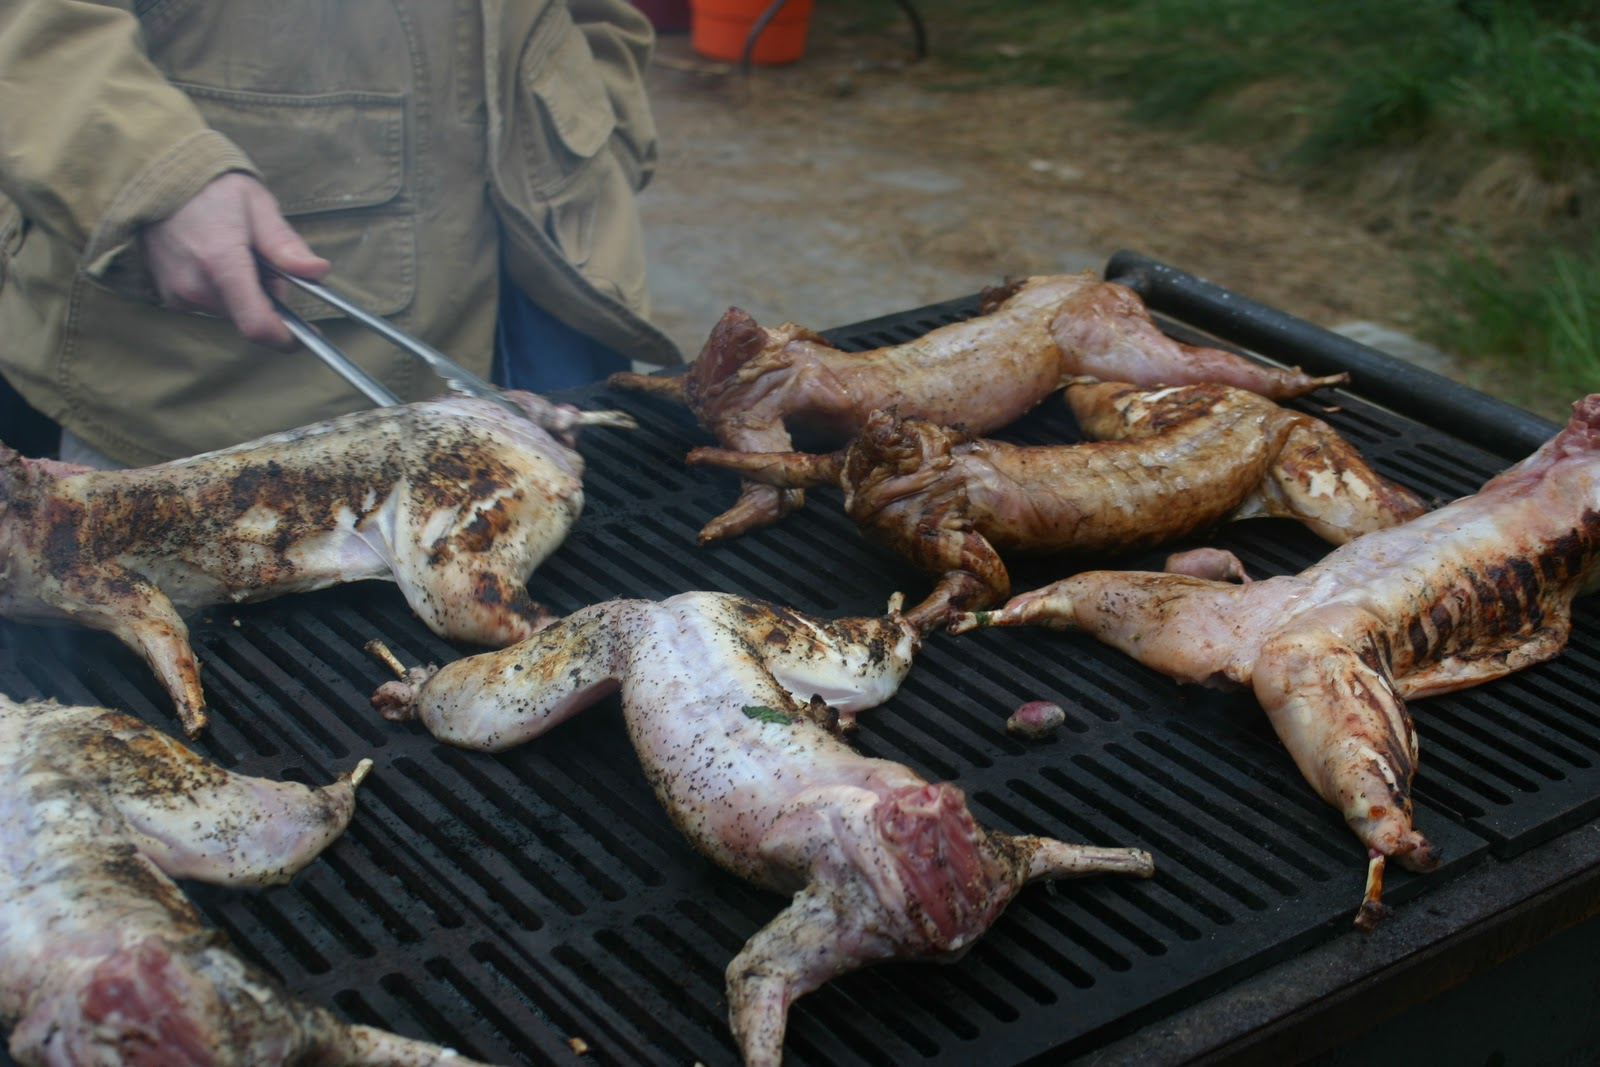 How to cook the rabbit completely in the oven and how much time is he preparing